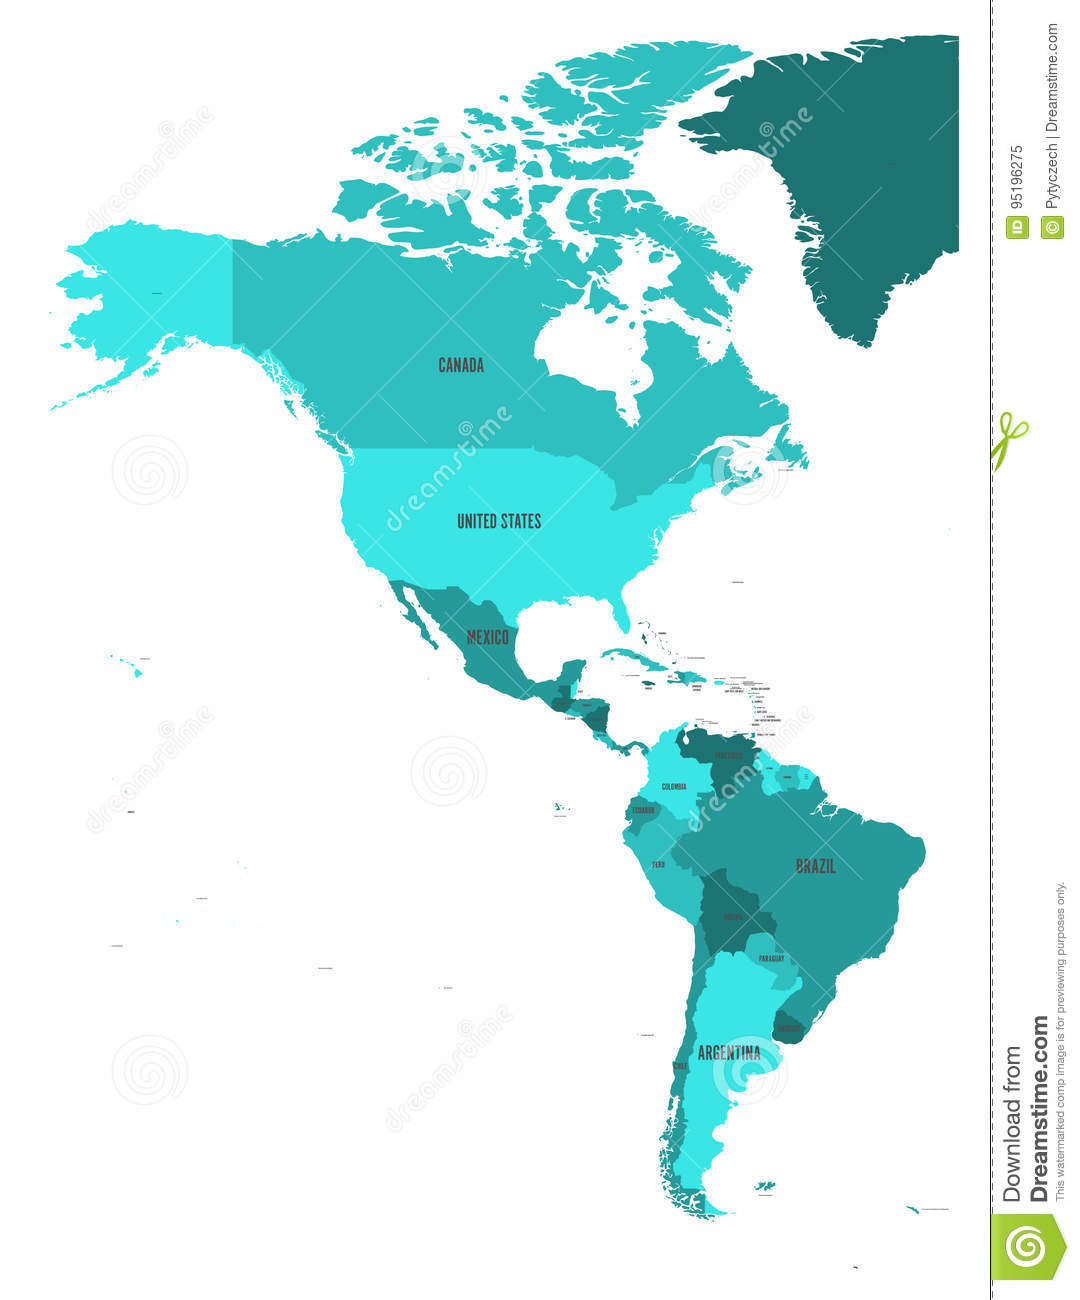 Picture of: Central South America Map Stock Illustrations 2 880 Central South America Map Stock Illustrations Vectors Clipart Dreamstime